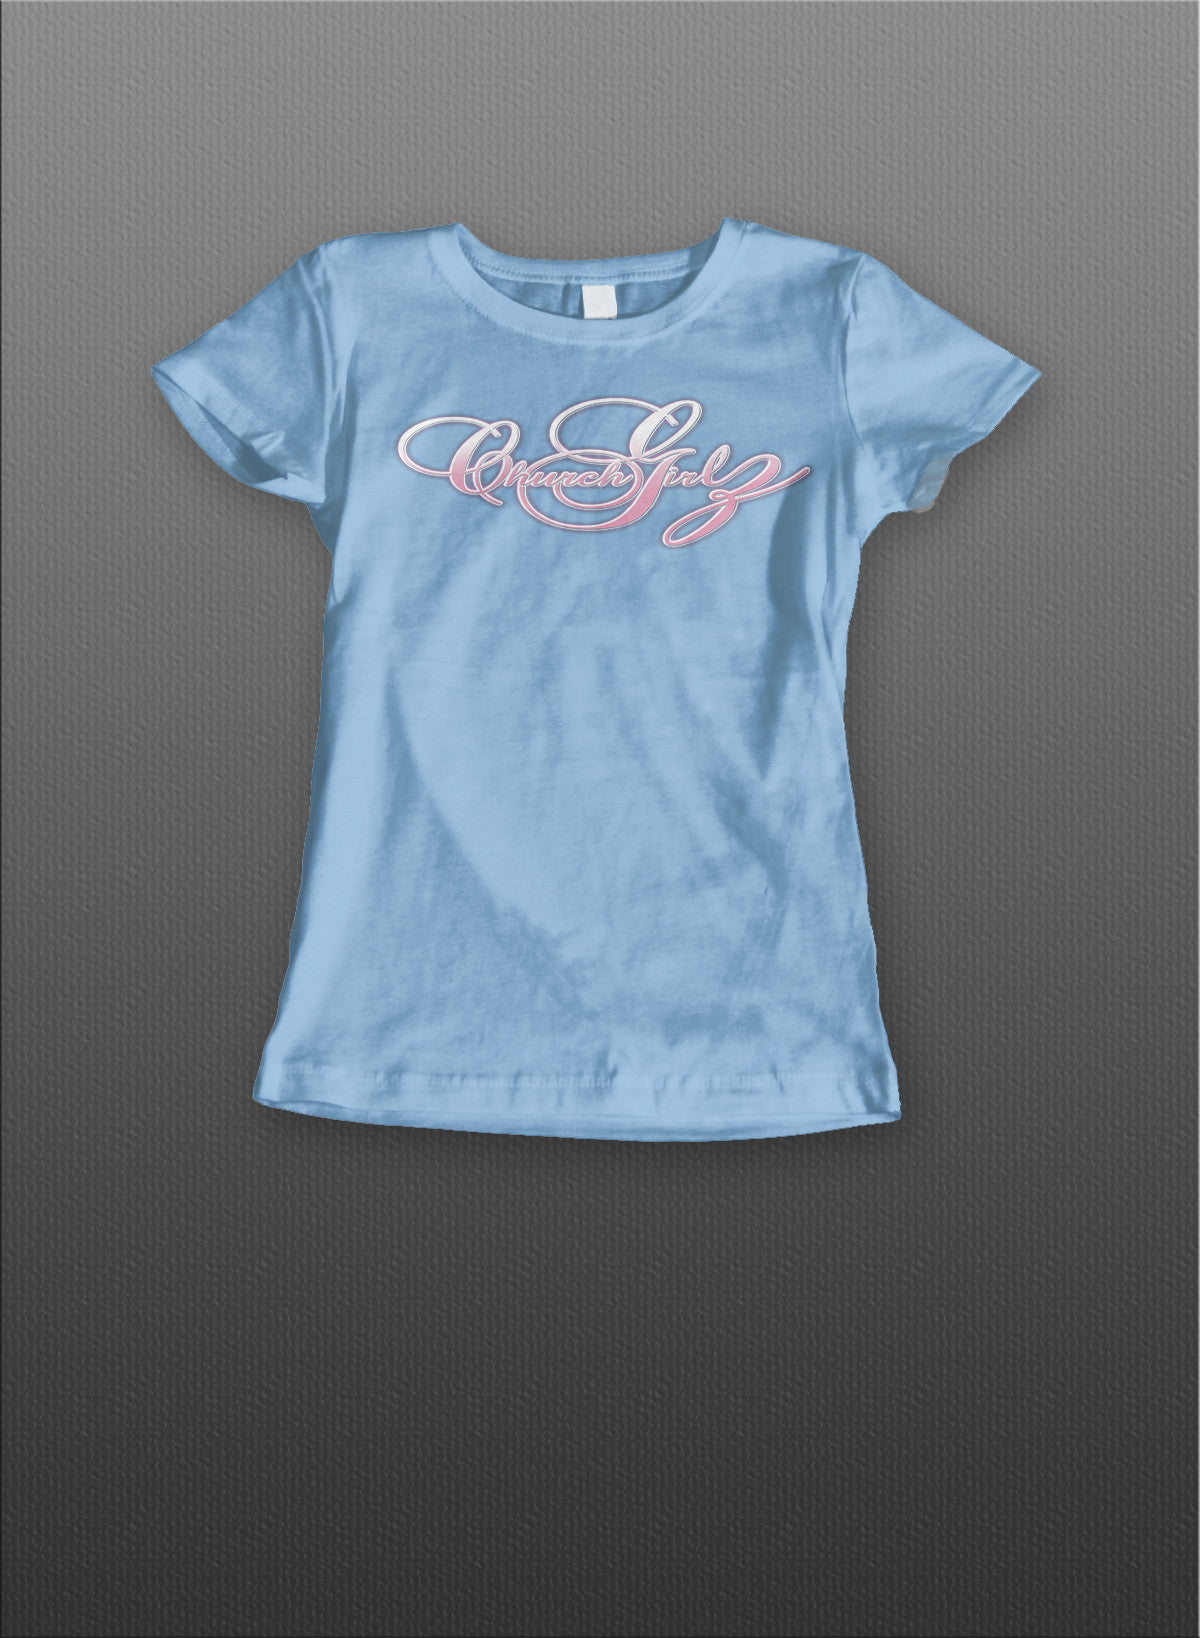 Church Girlz Signature Jersey Tee